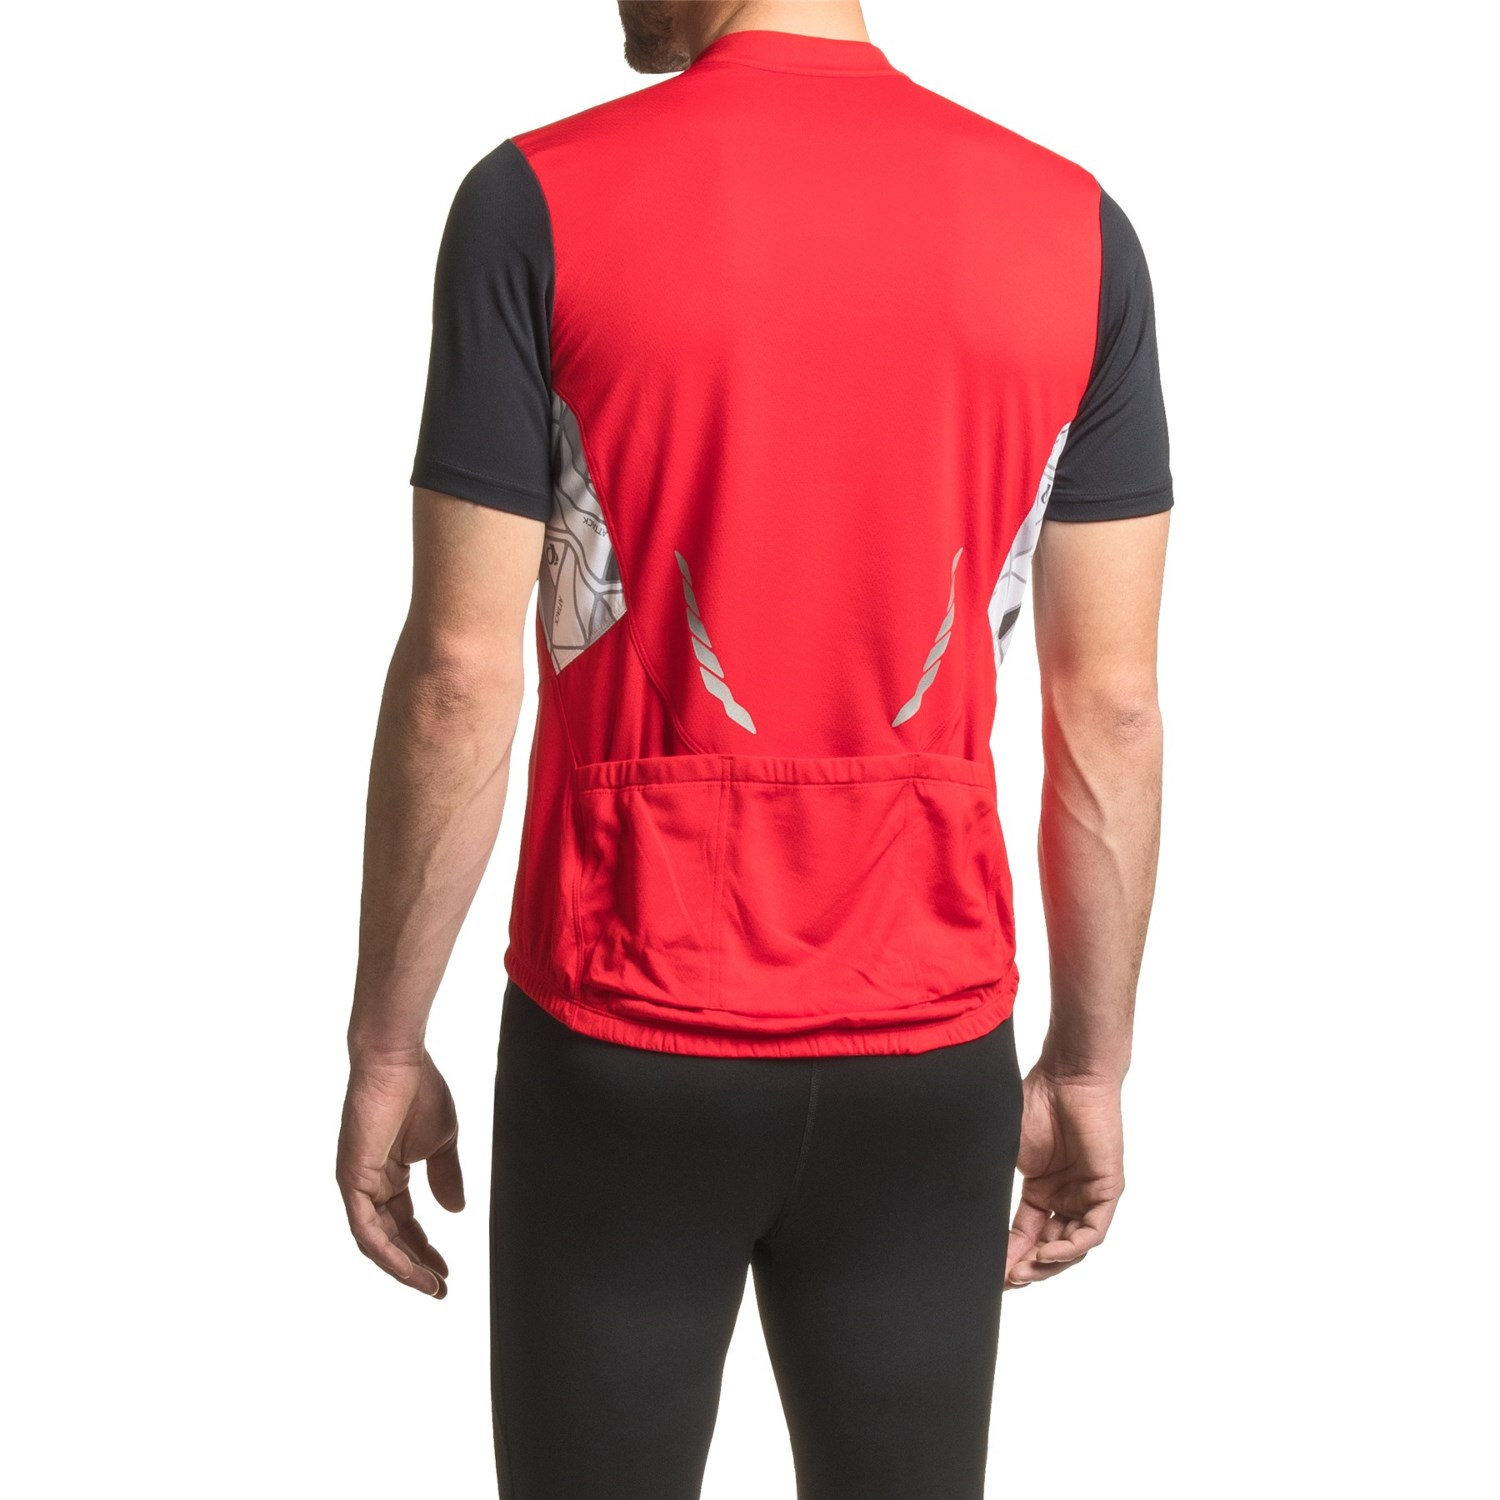 Pearl izumi attack cycling jersey for men save 57 for Pearl izumi cycling shirt